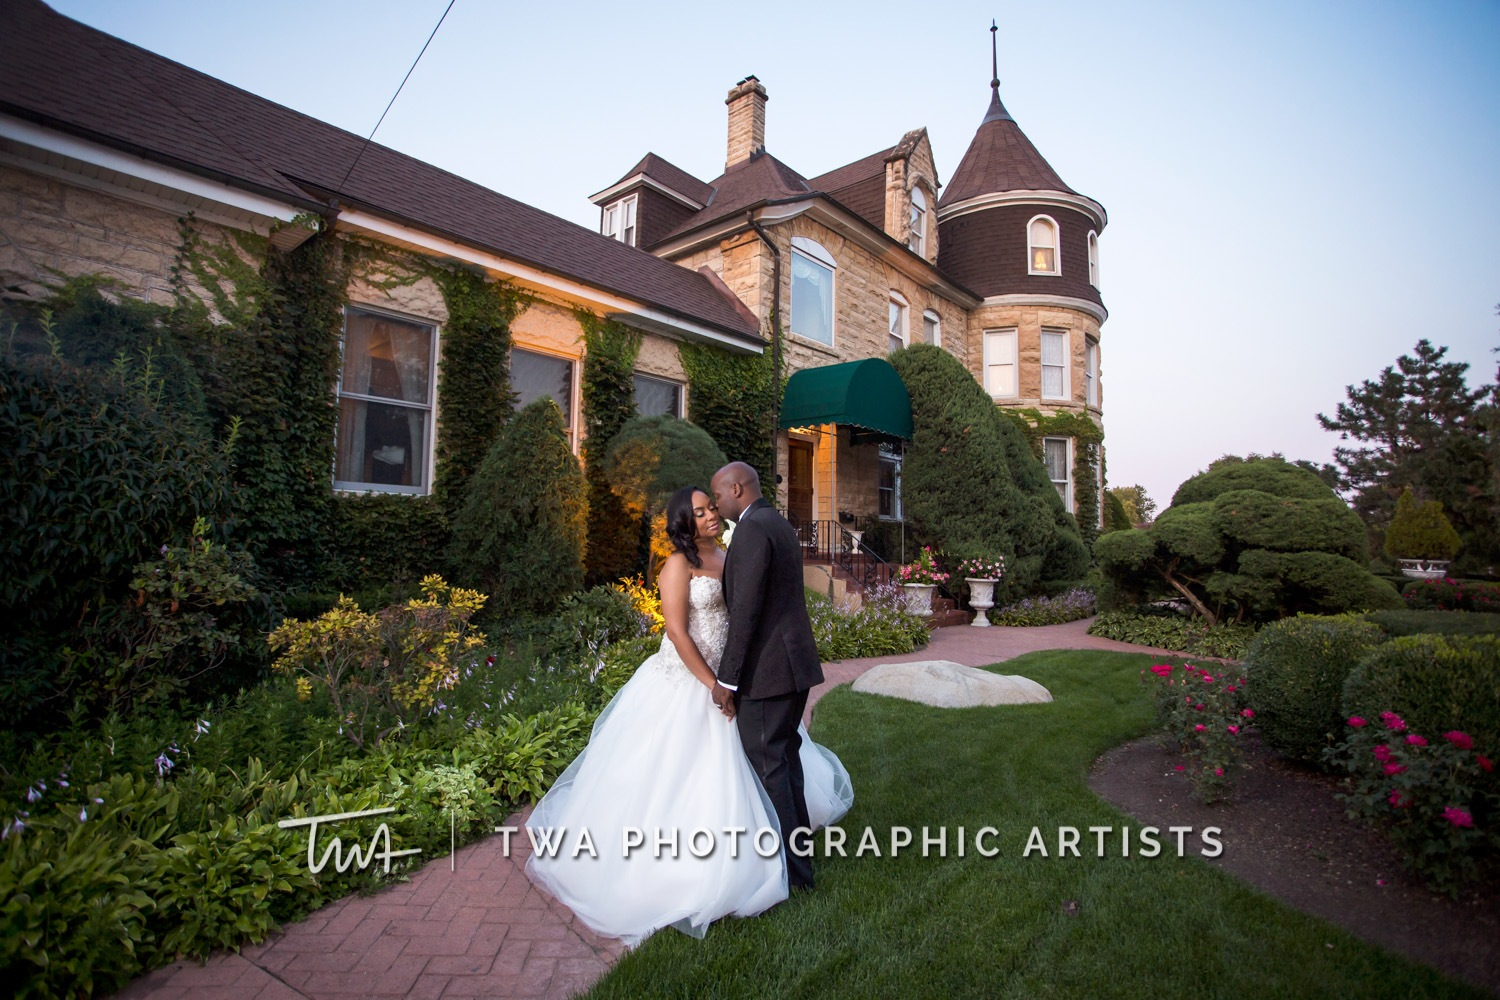 Chicago-Wedding-Photographer-TWA-Photographic-Artists-Haley-Mansion_Graves_Moffett_JM-033_0465